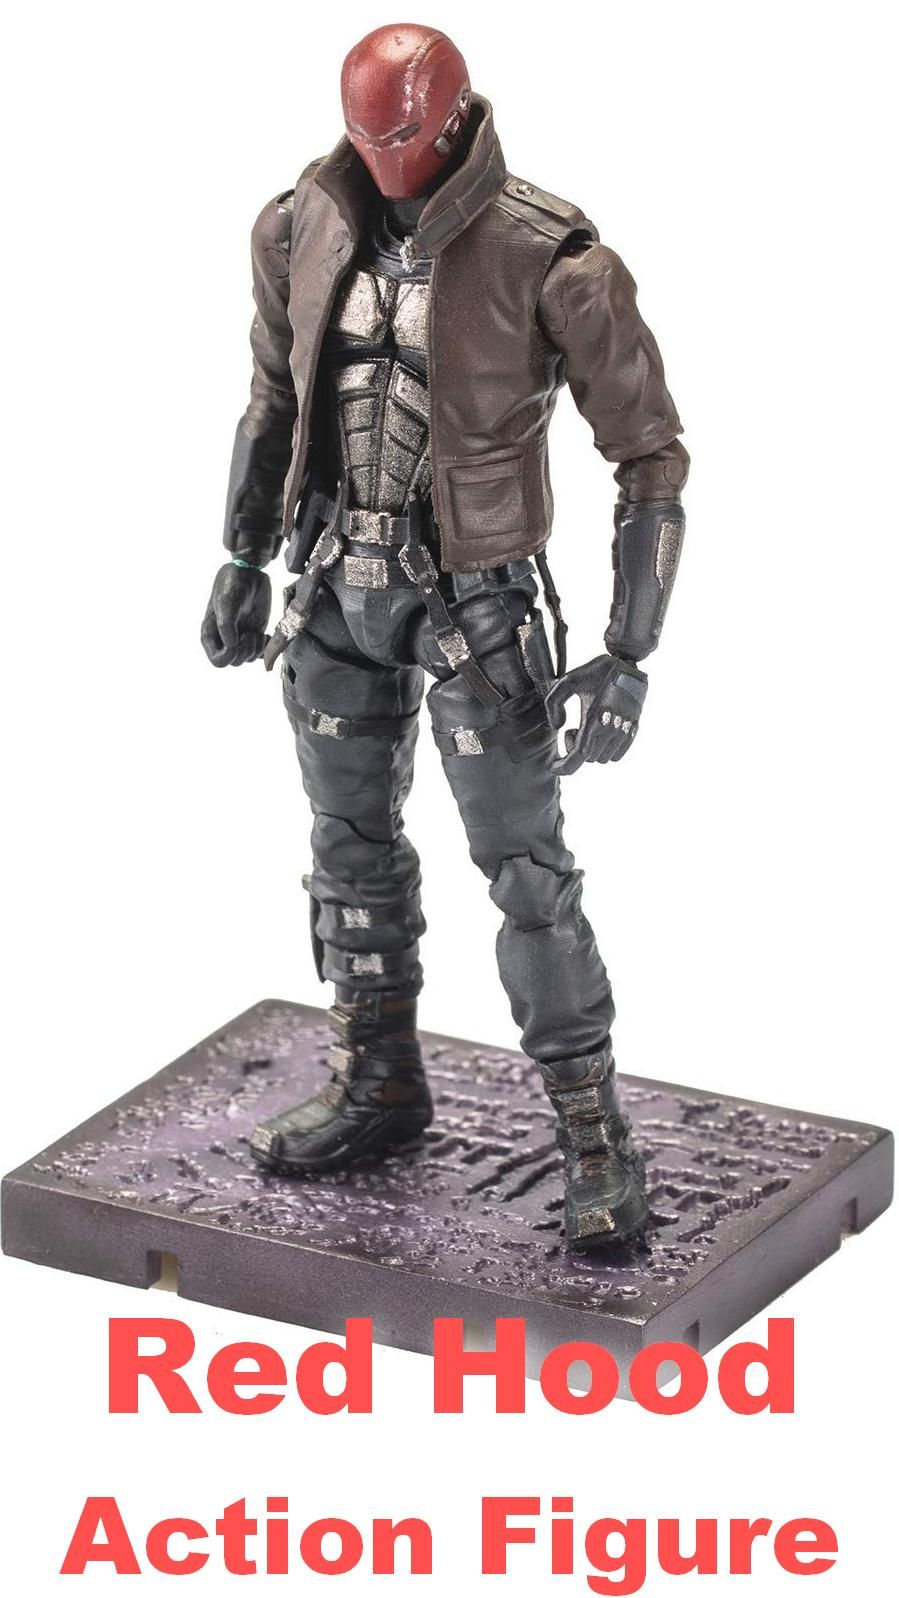 Red Hood Action Figure From Injustice 2 Action Figures Red Hood Dc Comics Action Figures